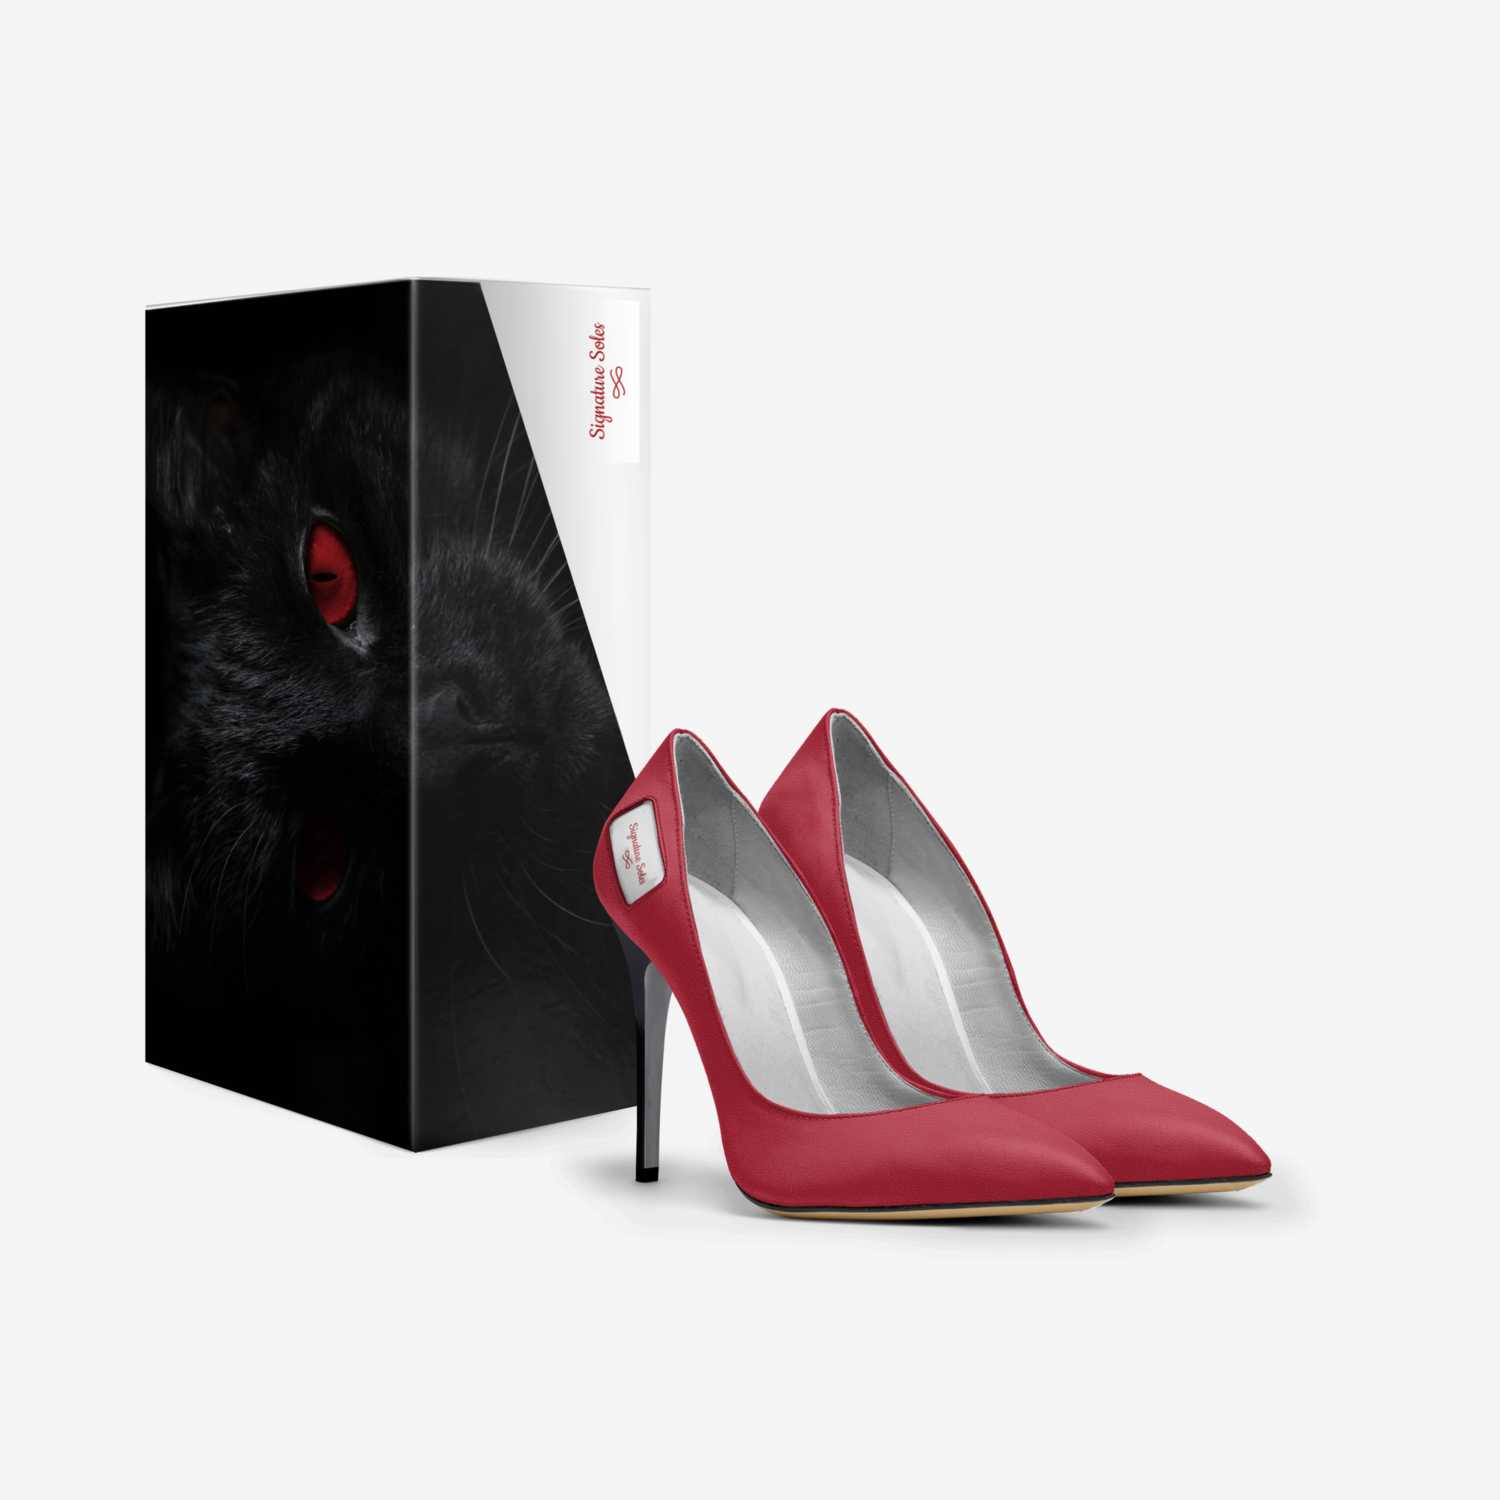 Signature Soles custom made in Italy shoes by Terra Barnes | Box view